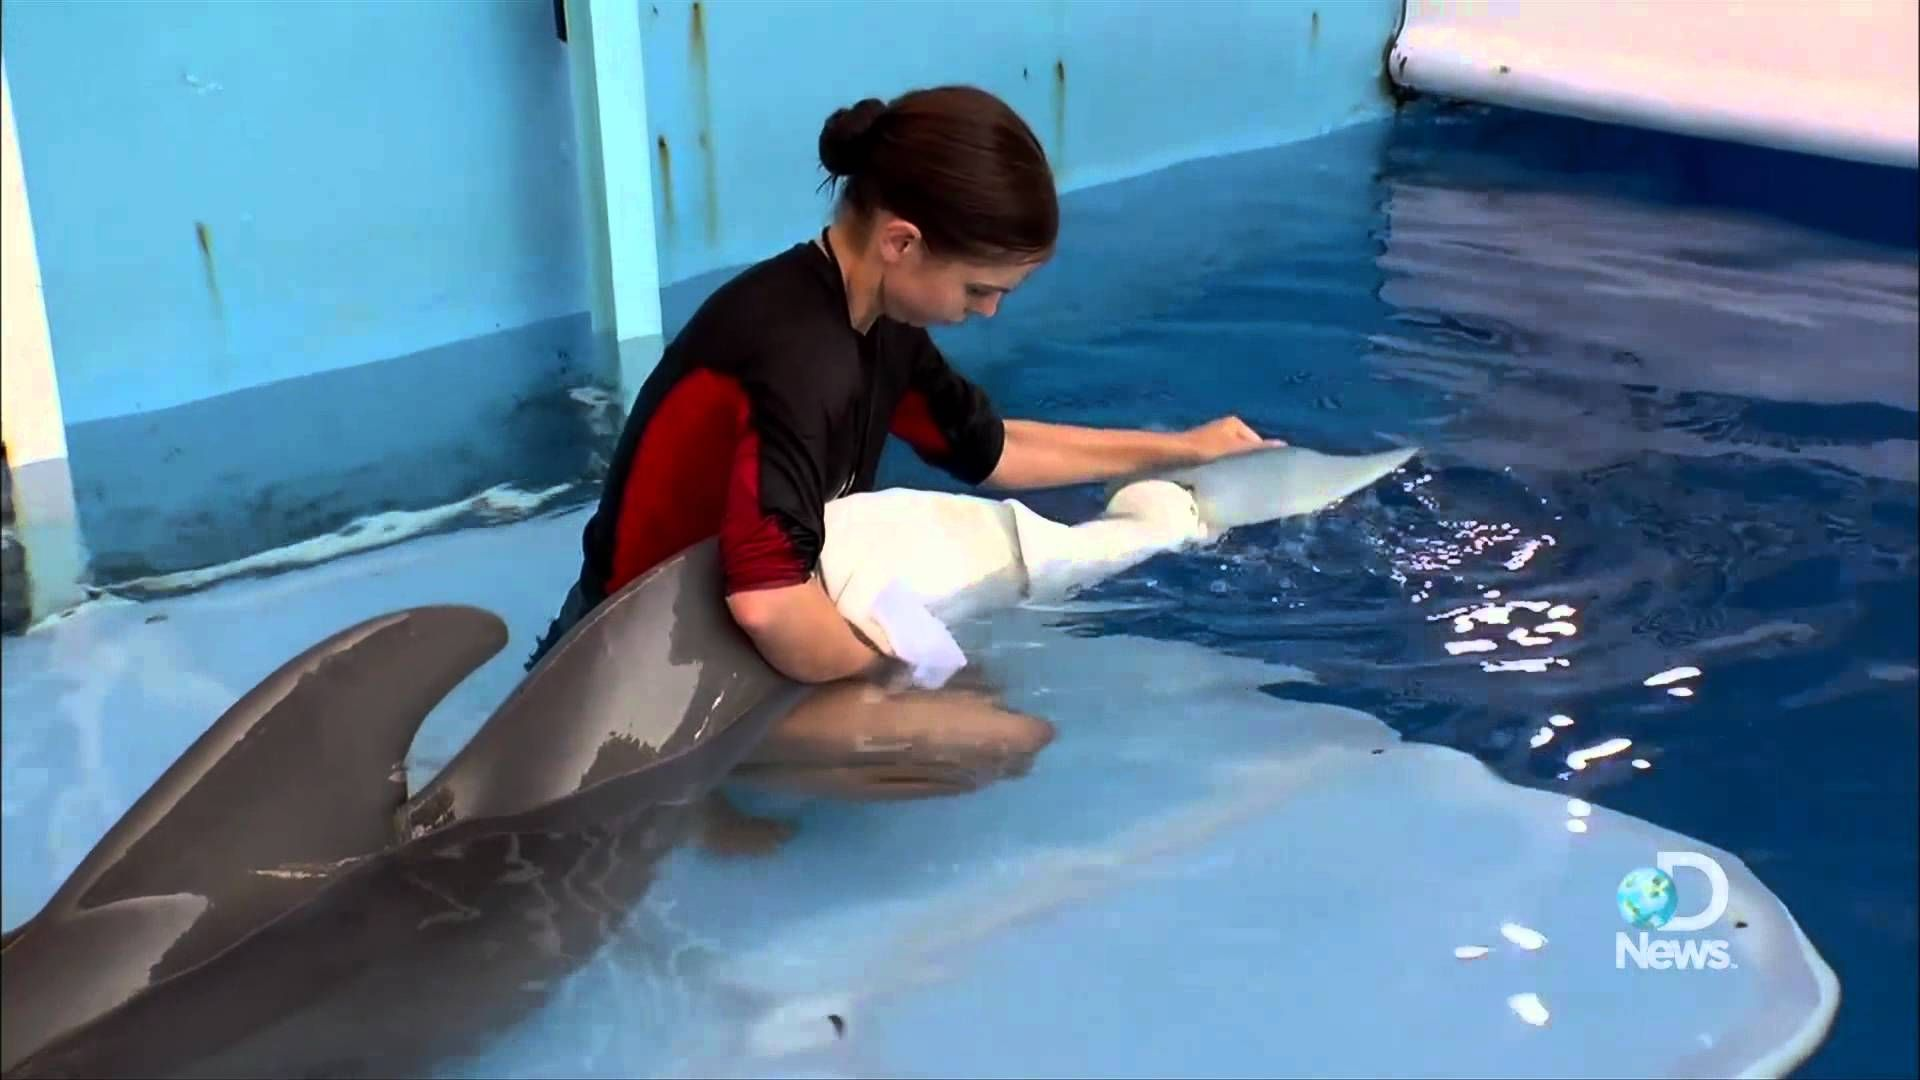 Dolphin Tale How Real is Winter's Story? Dolphin tale